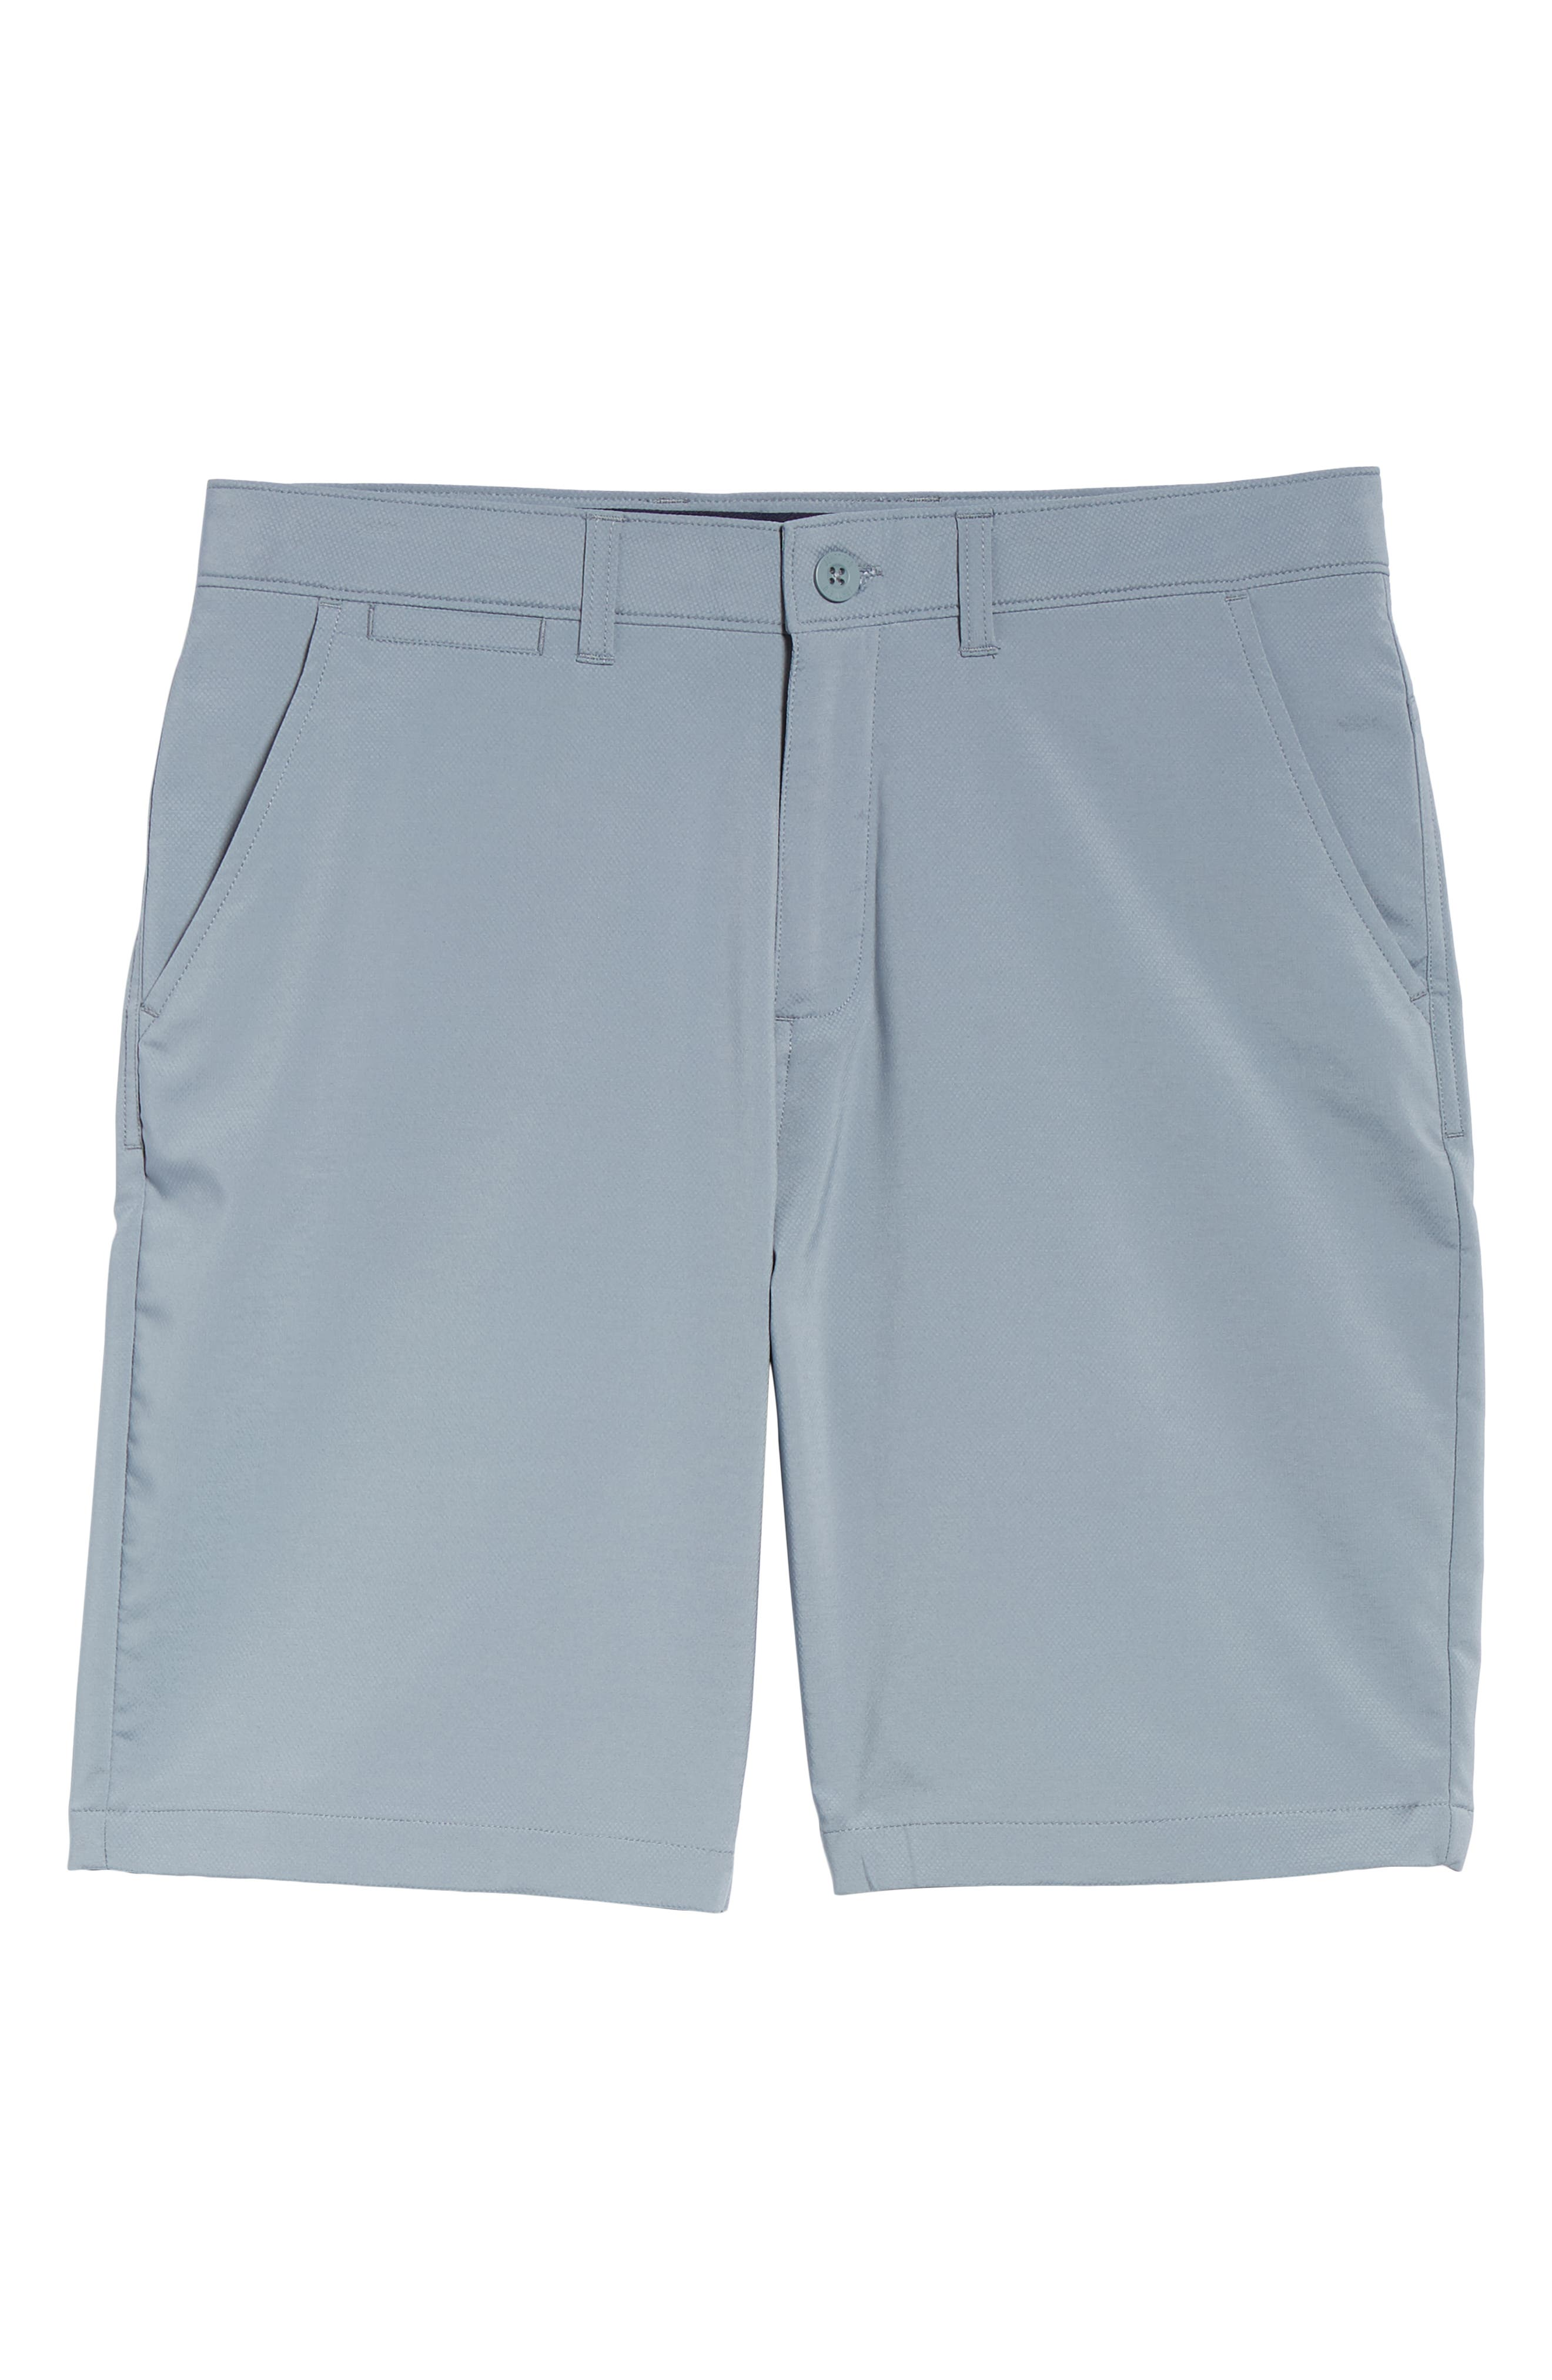 Mulligan Regular Fit Prep-Formance Shorts,                             Alternate thumbnail 6, color,                             CLOUDBREAK